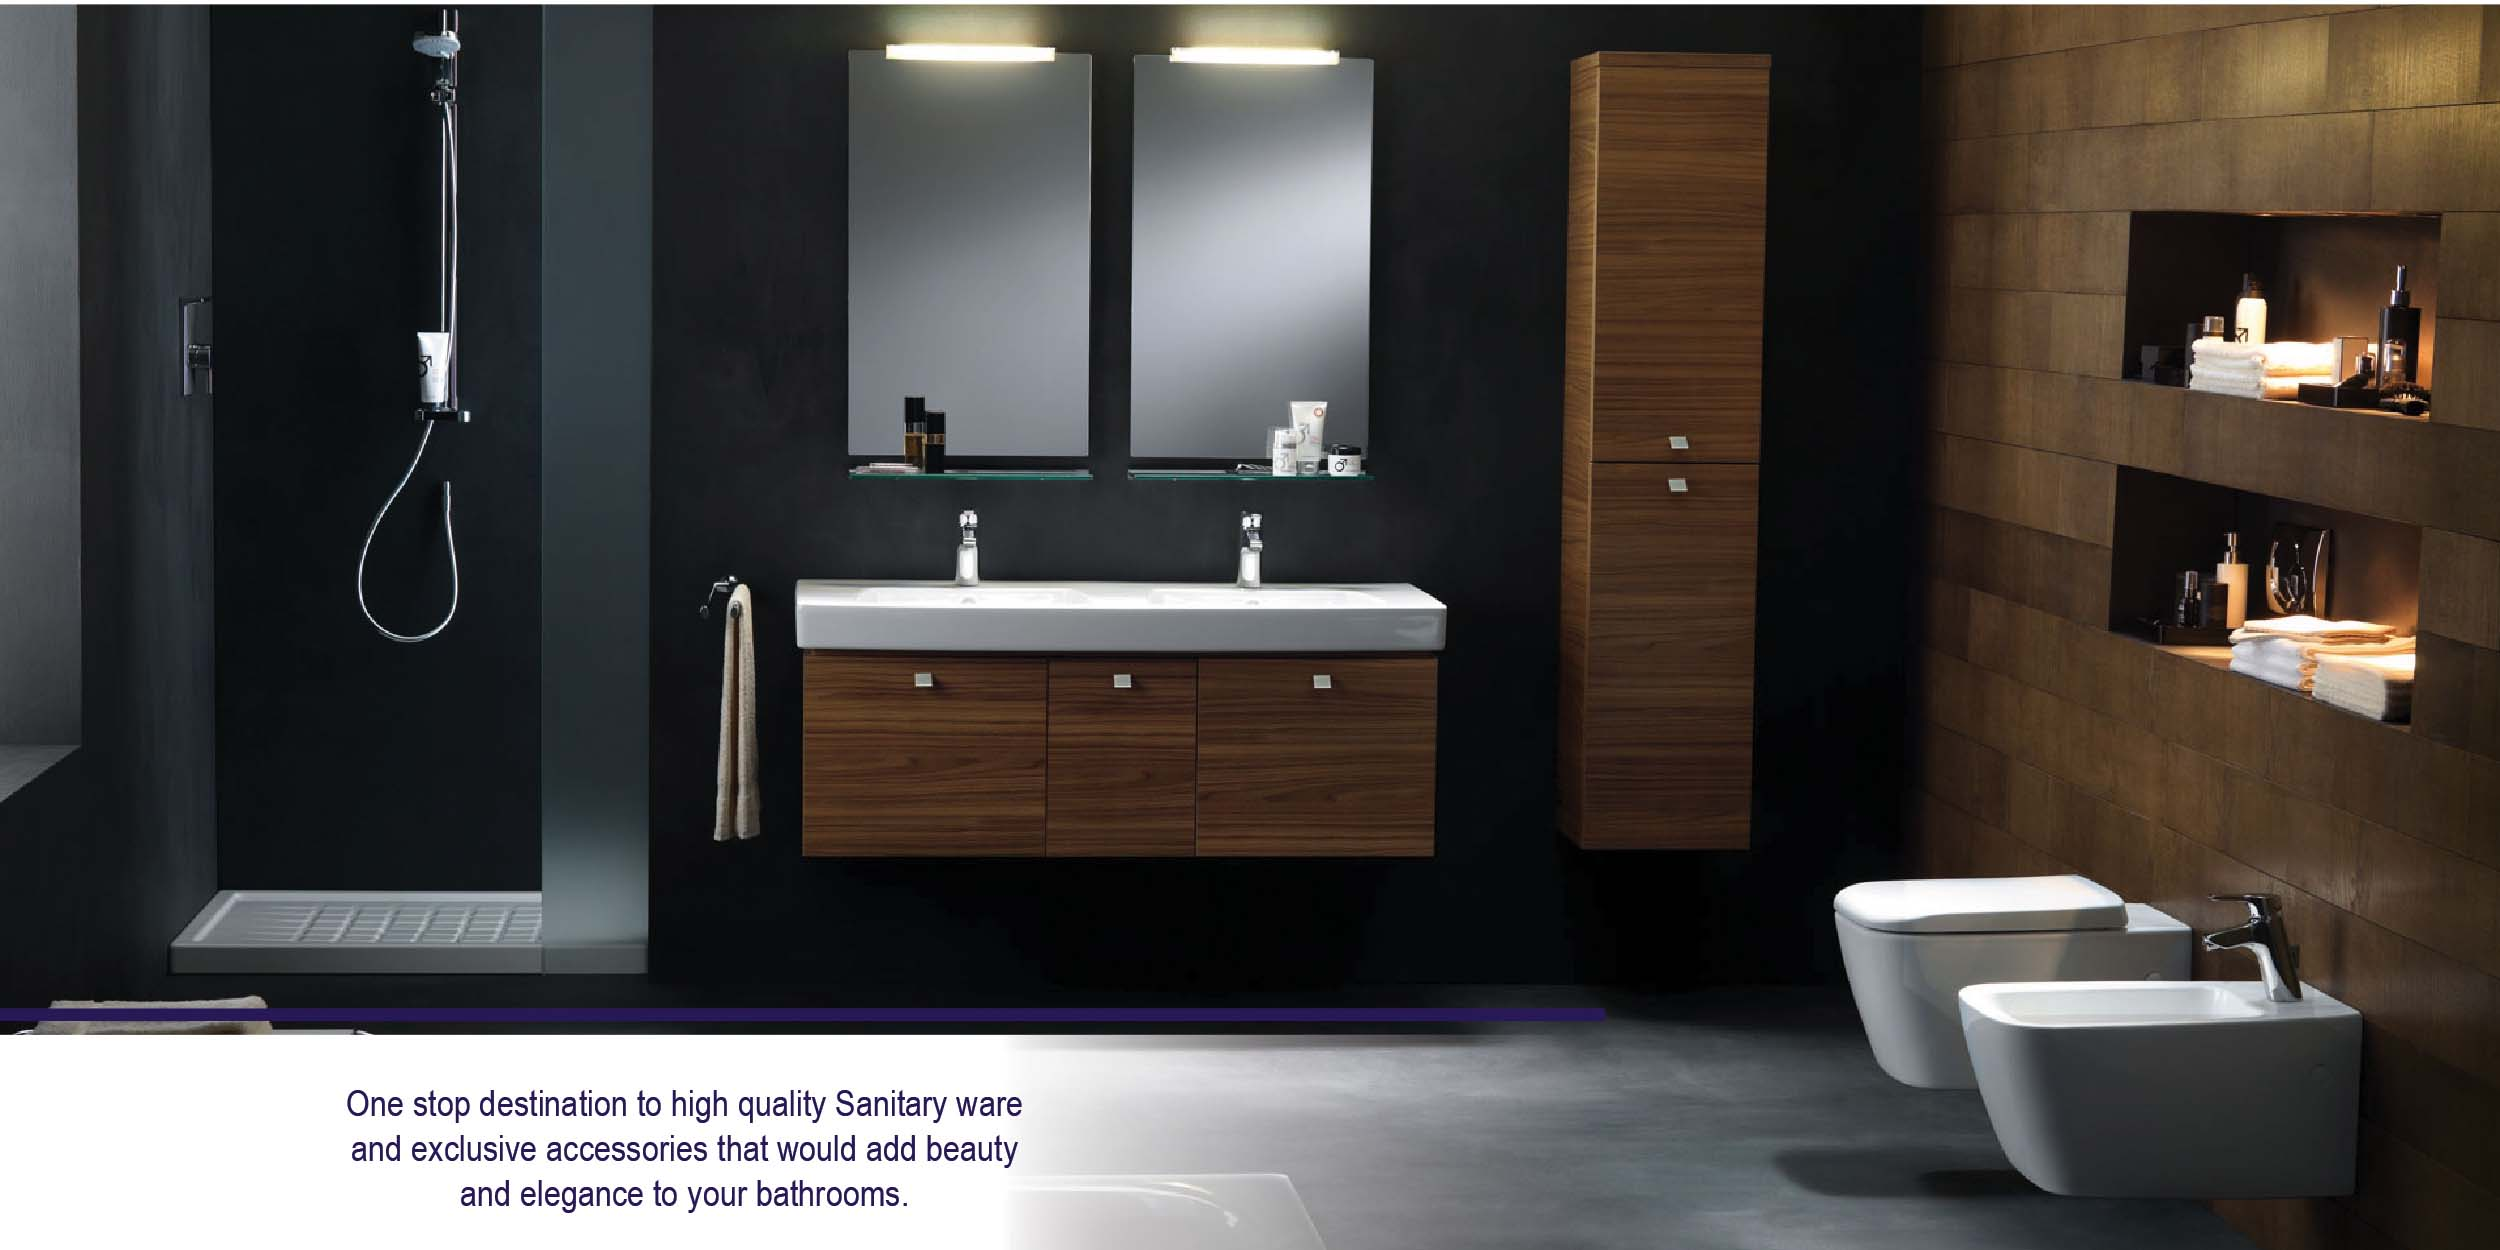 Modern time; popular style of bathroom design